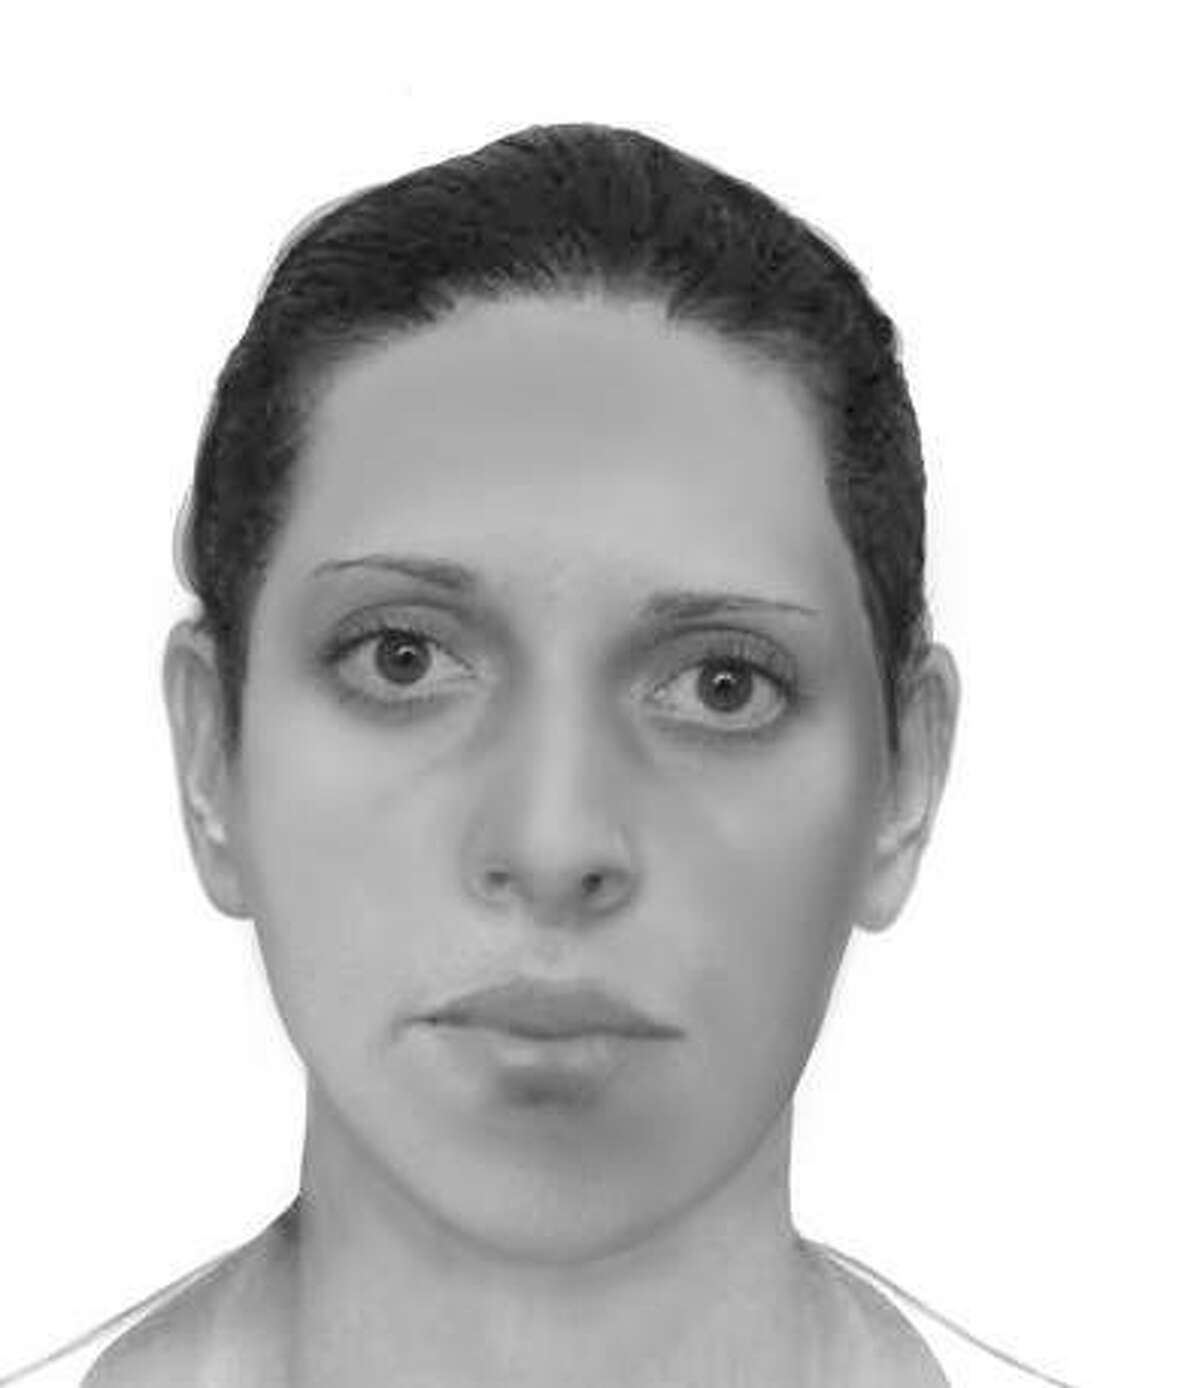 The above image is an updated facial reconstruction based on the woman's skeletal remains. The image is an approximate likeness based on data obtained from a more recent anthropological analysis. Hairstyle, hair color and eye color are all open to interpretation and may be different.